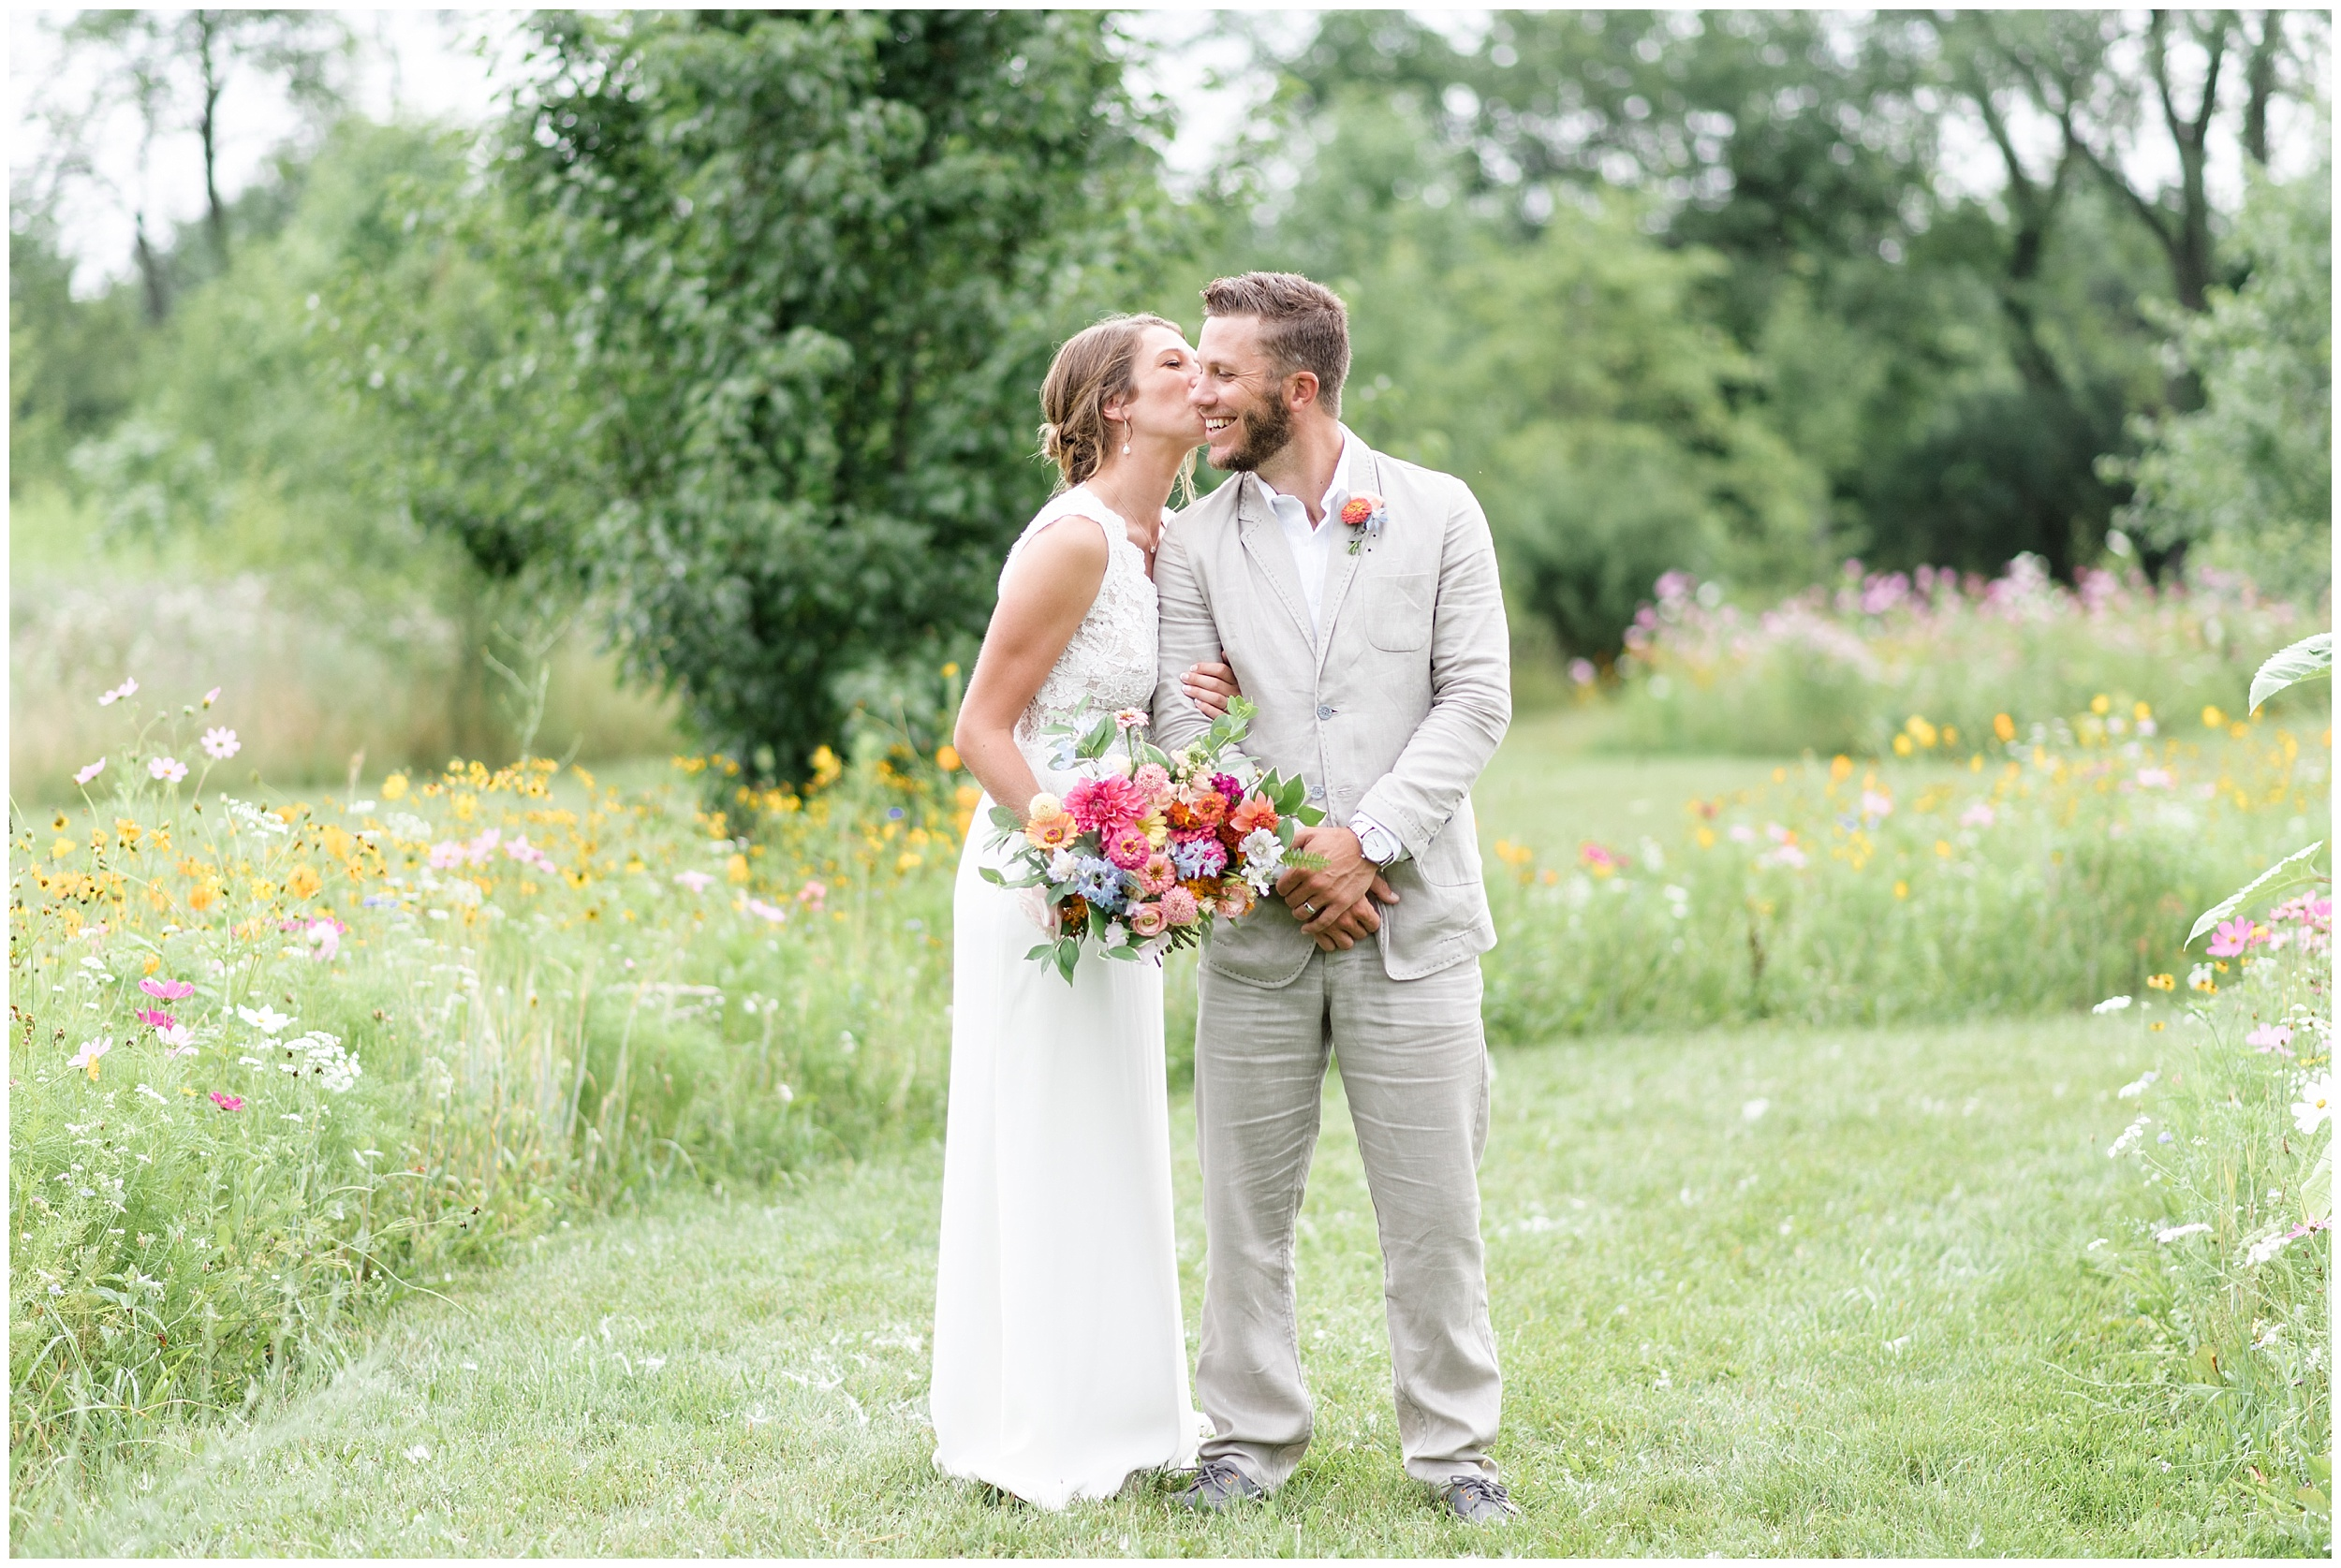 Whimsical-Ethereal-July-Kalamazoo-Wedding-Bright-Airy-Documentary-Milwaukee-Photographer_0070.jpg